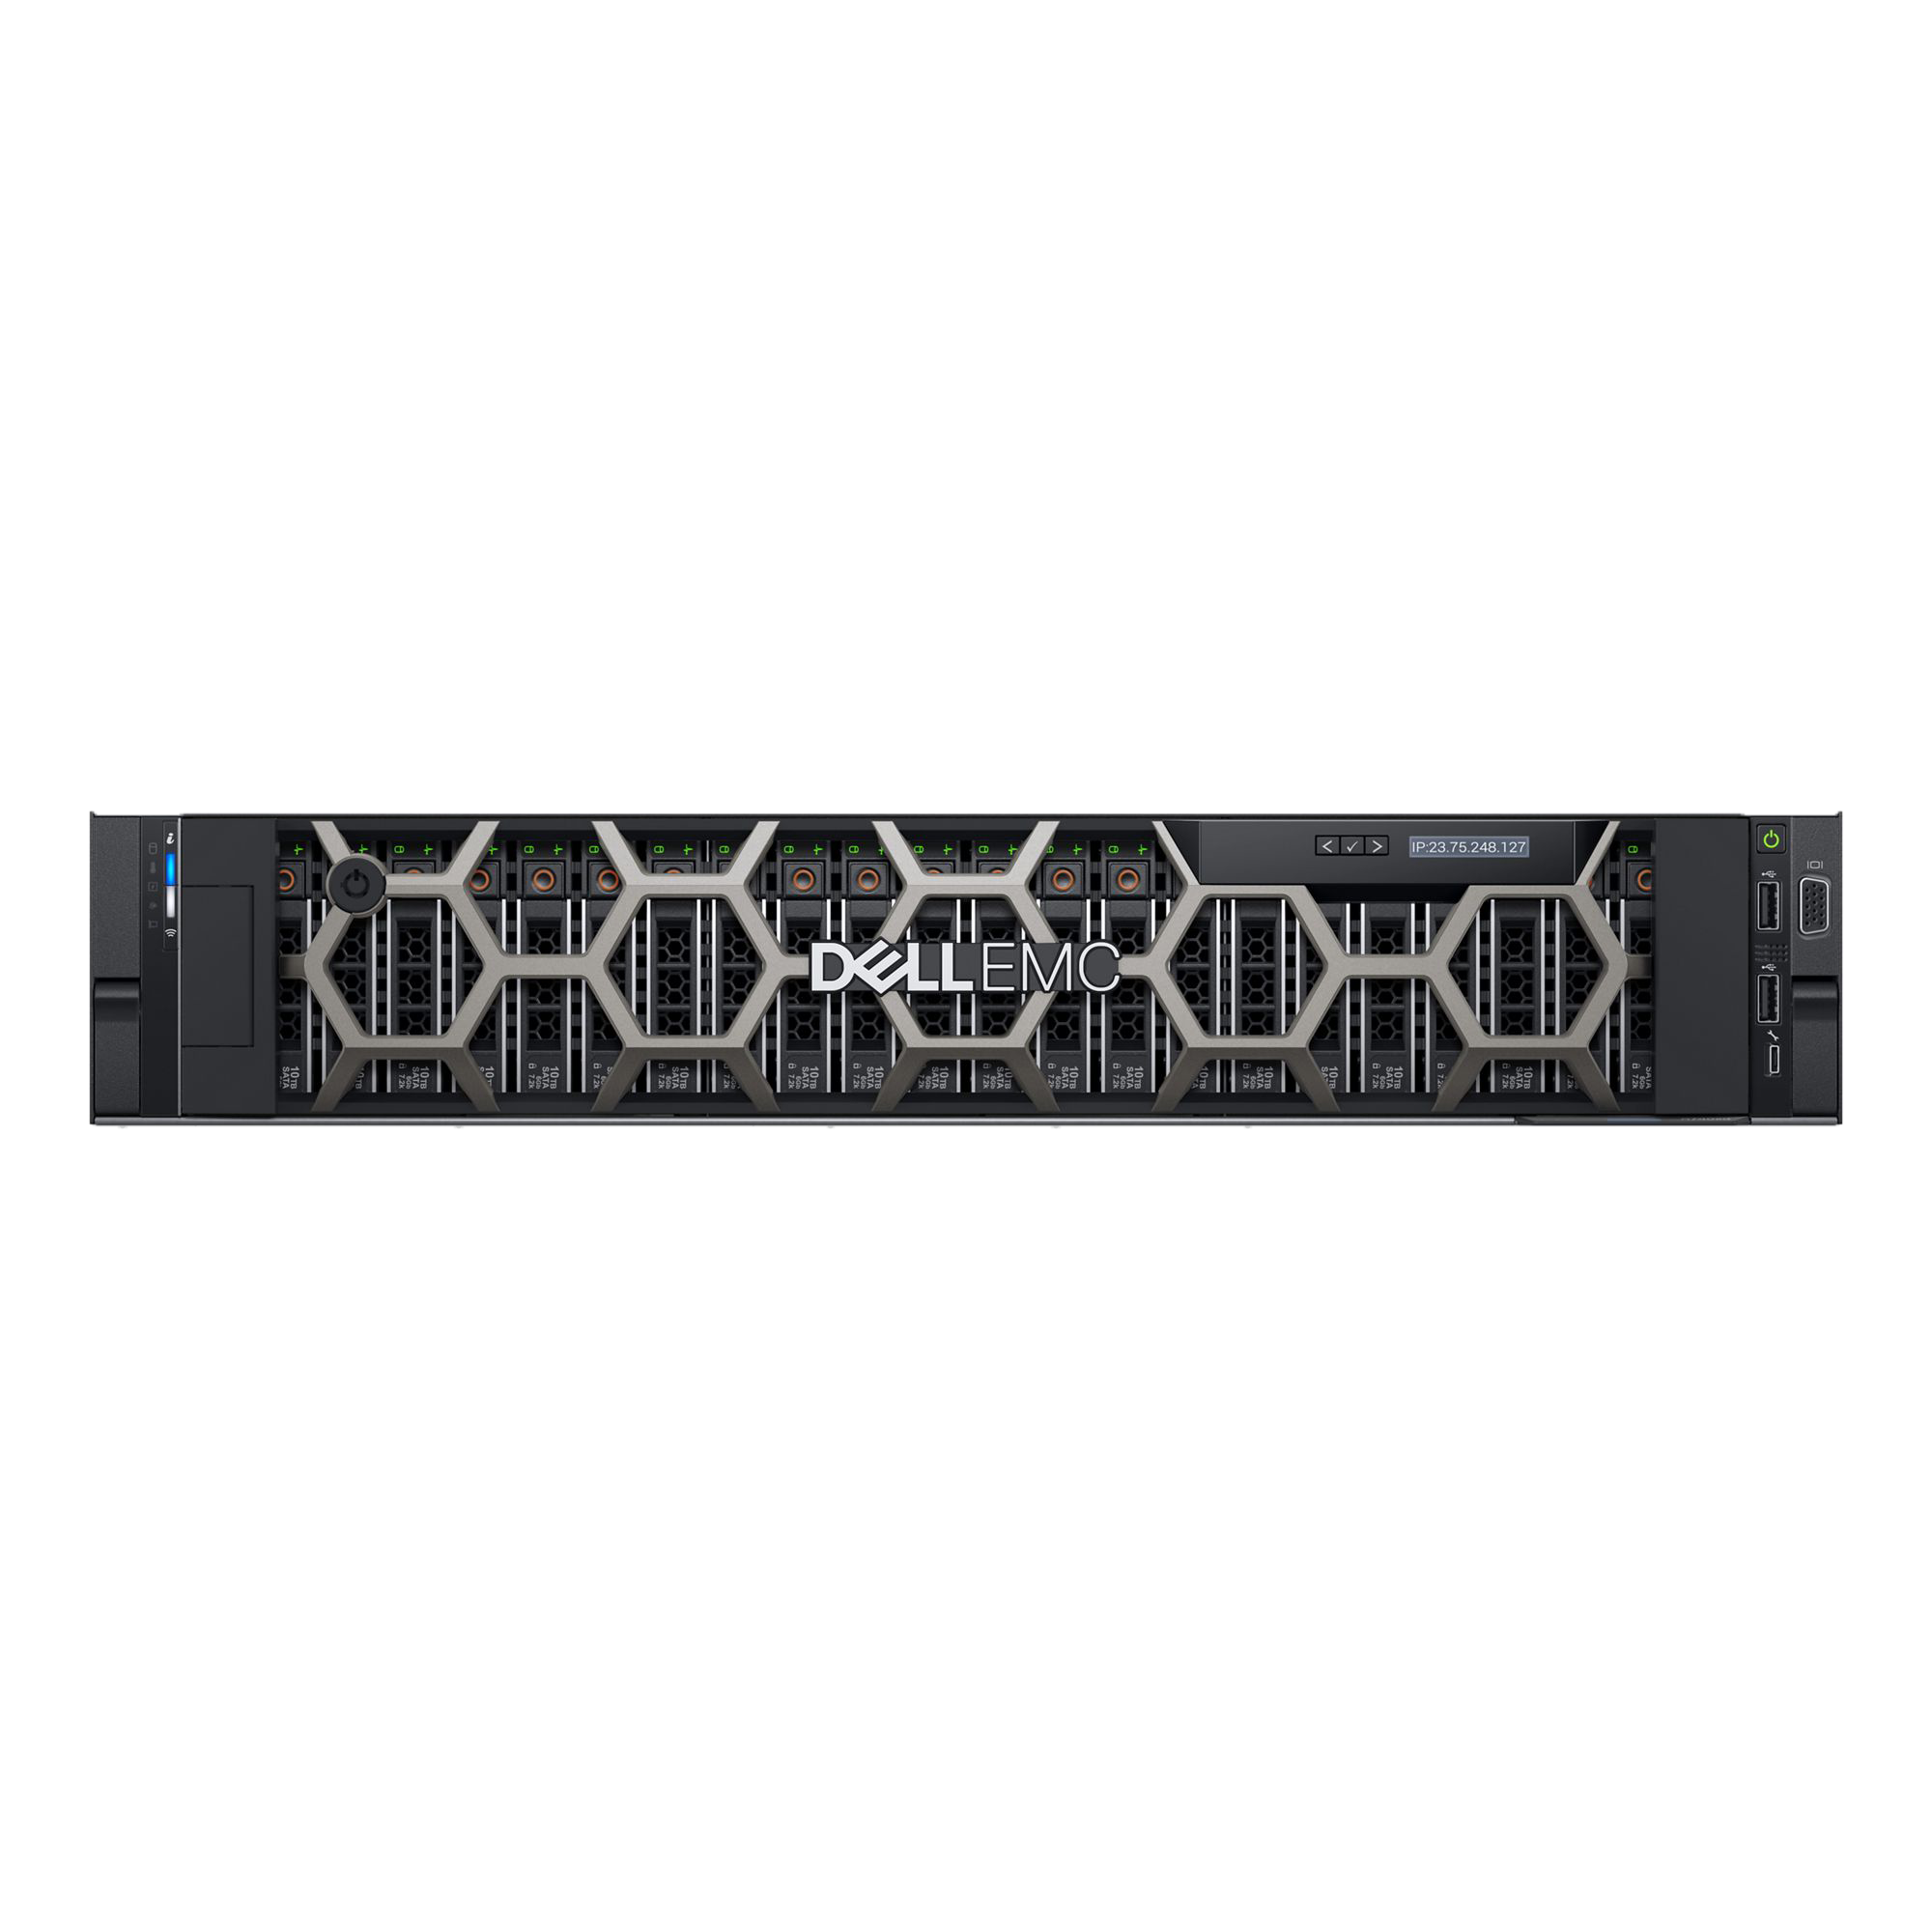 Image for PowerEdge R740